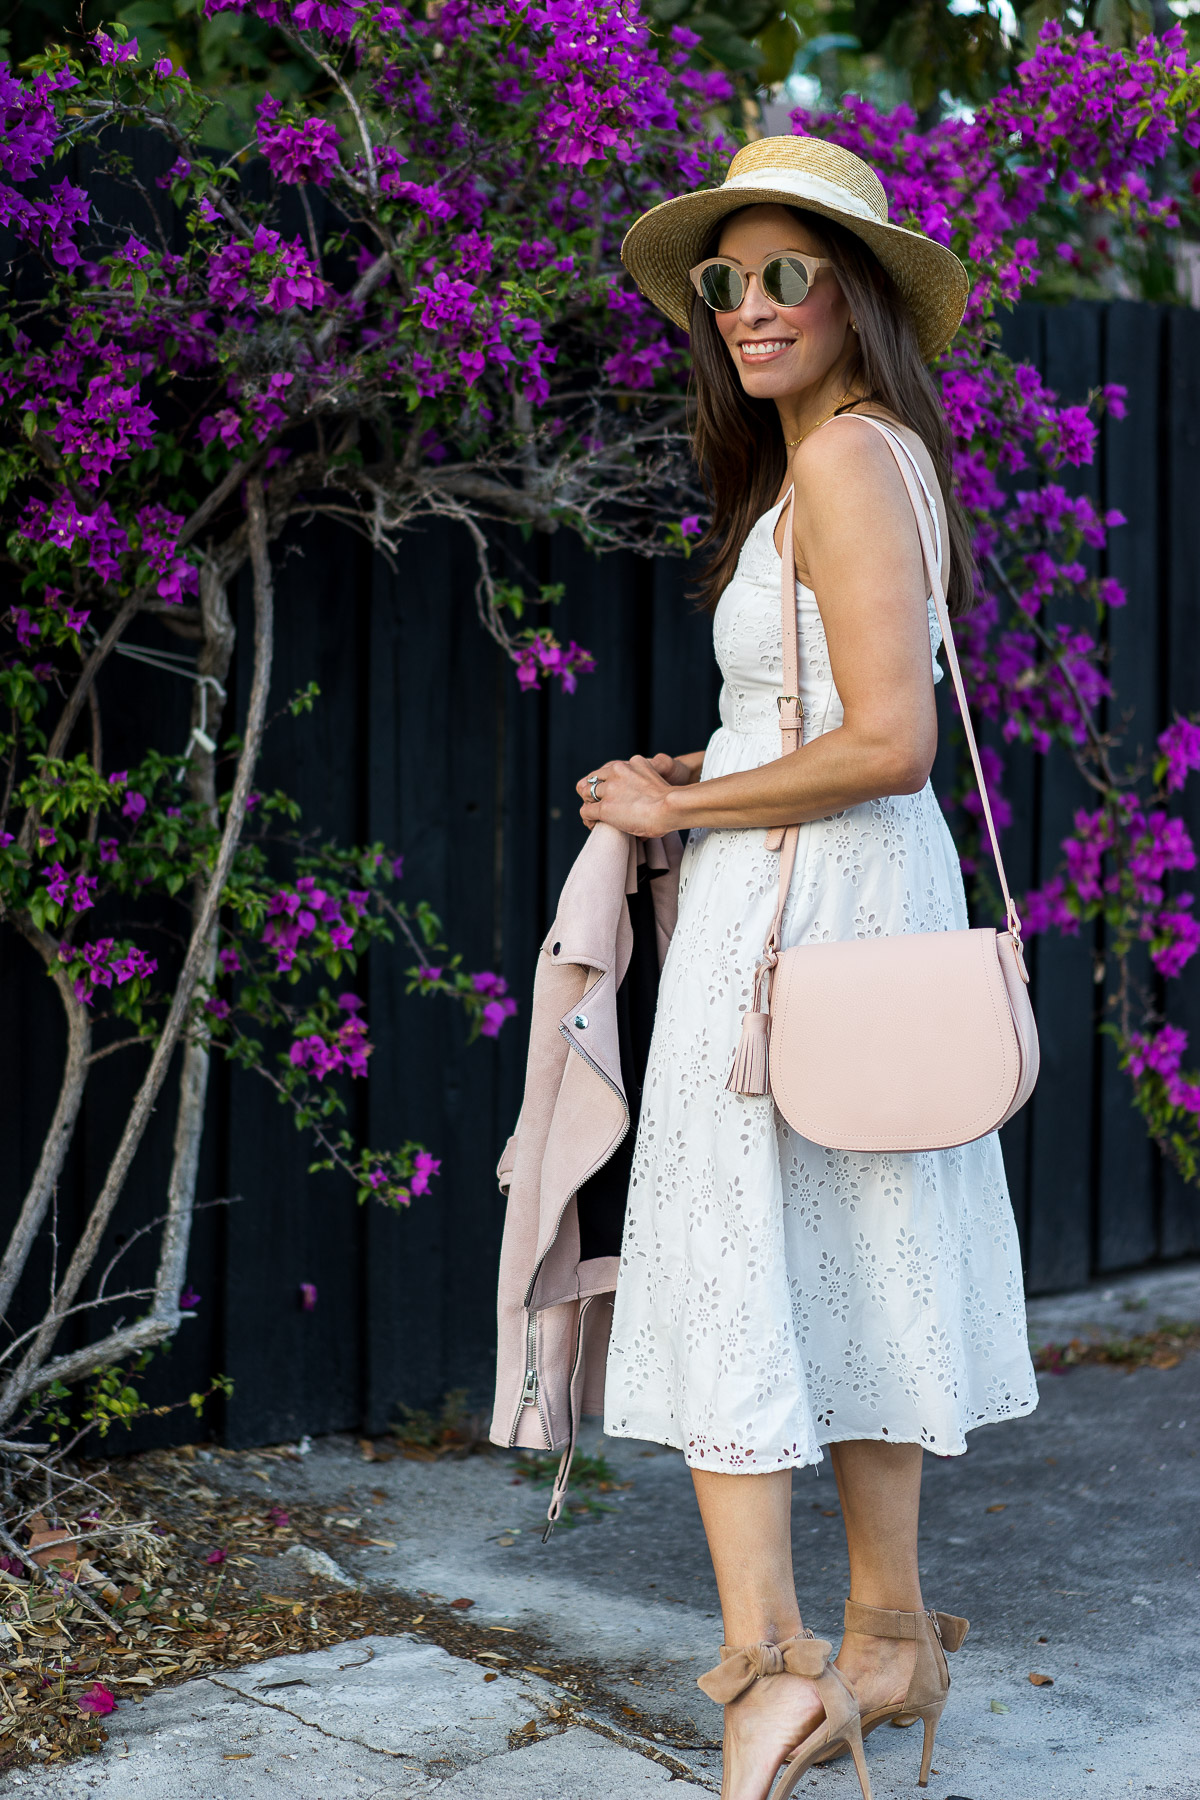 Old Navy midi dress worn with blush saddle bag to #SayHi to Spring by fashion blogger Amanda of AGlamLifestyle